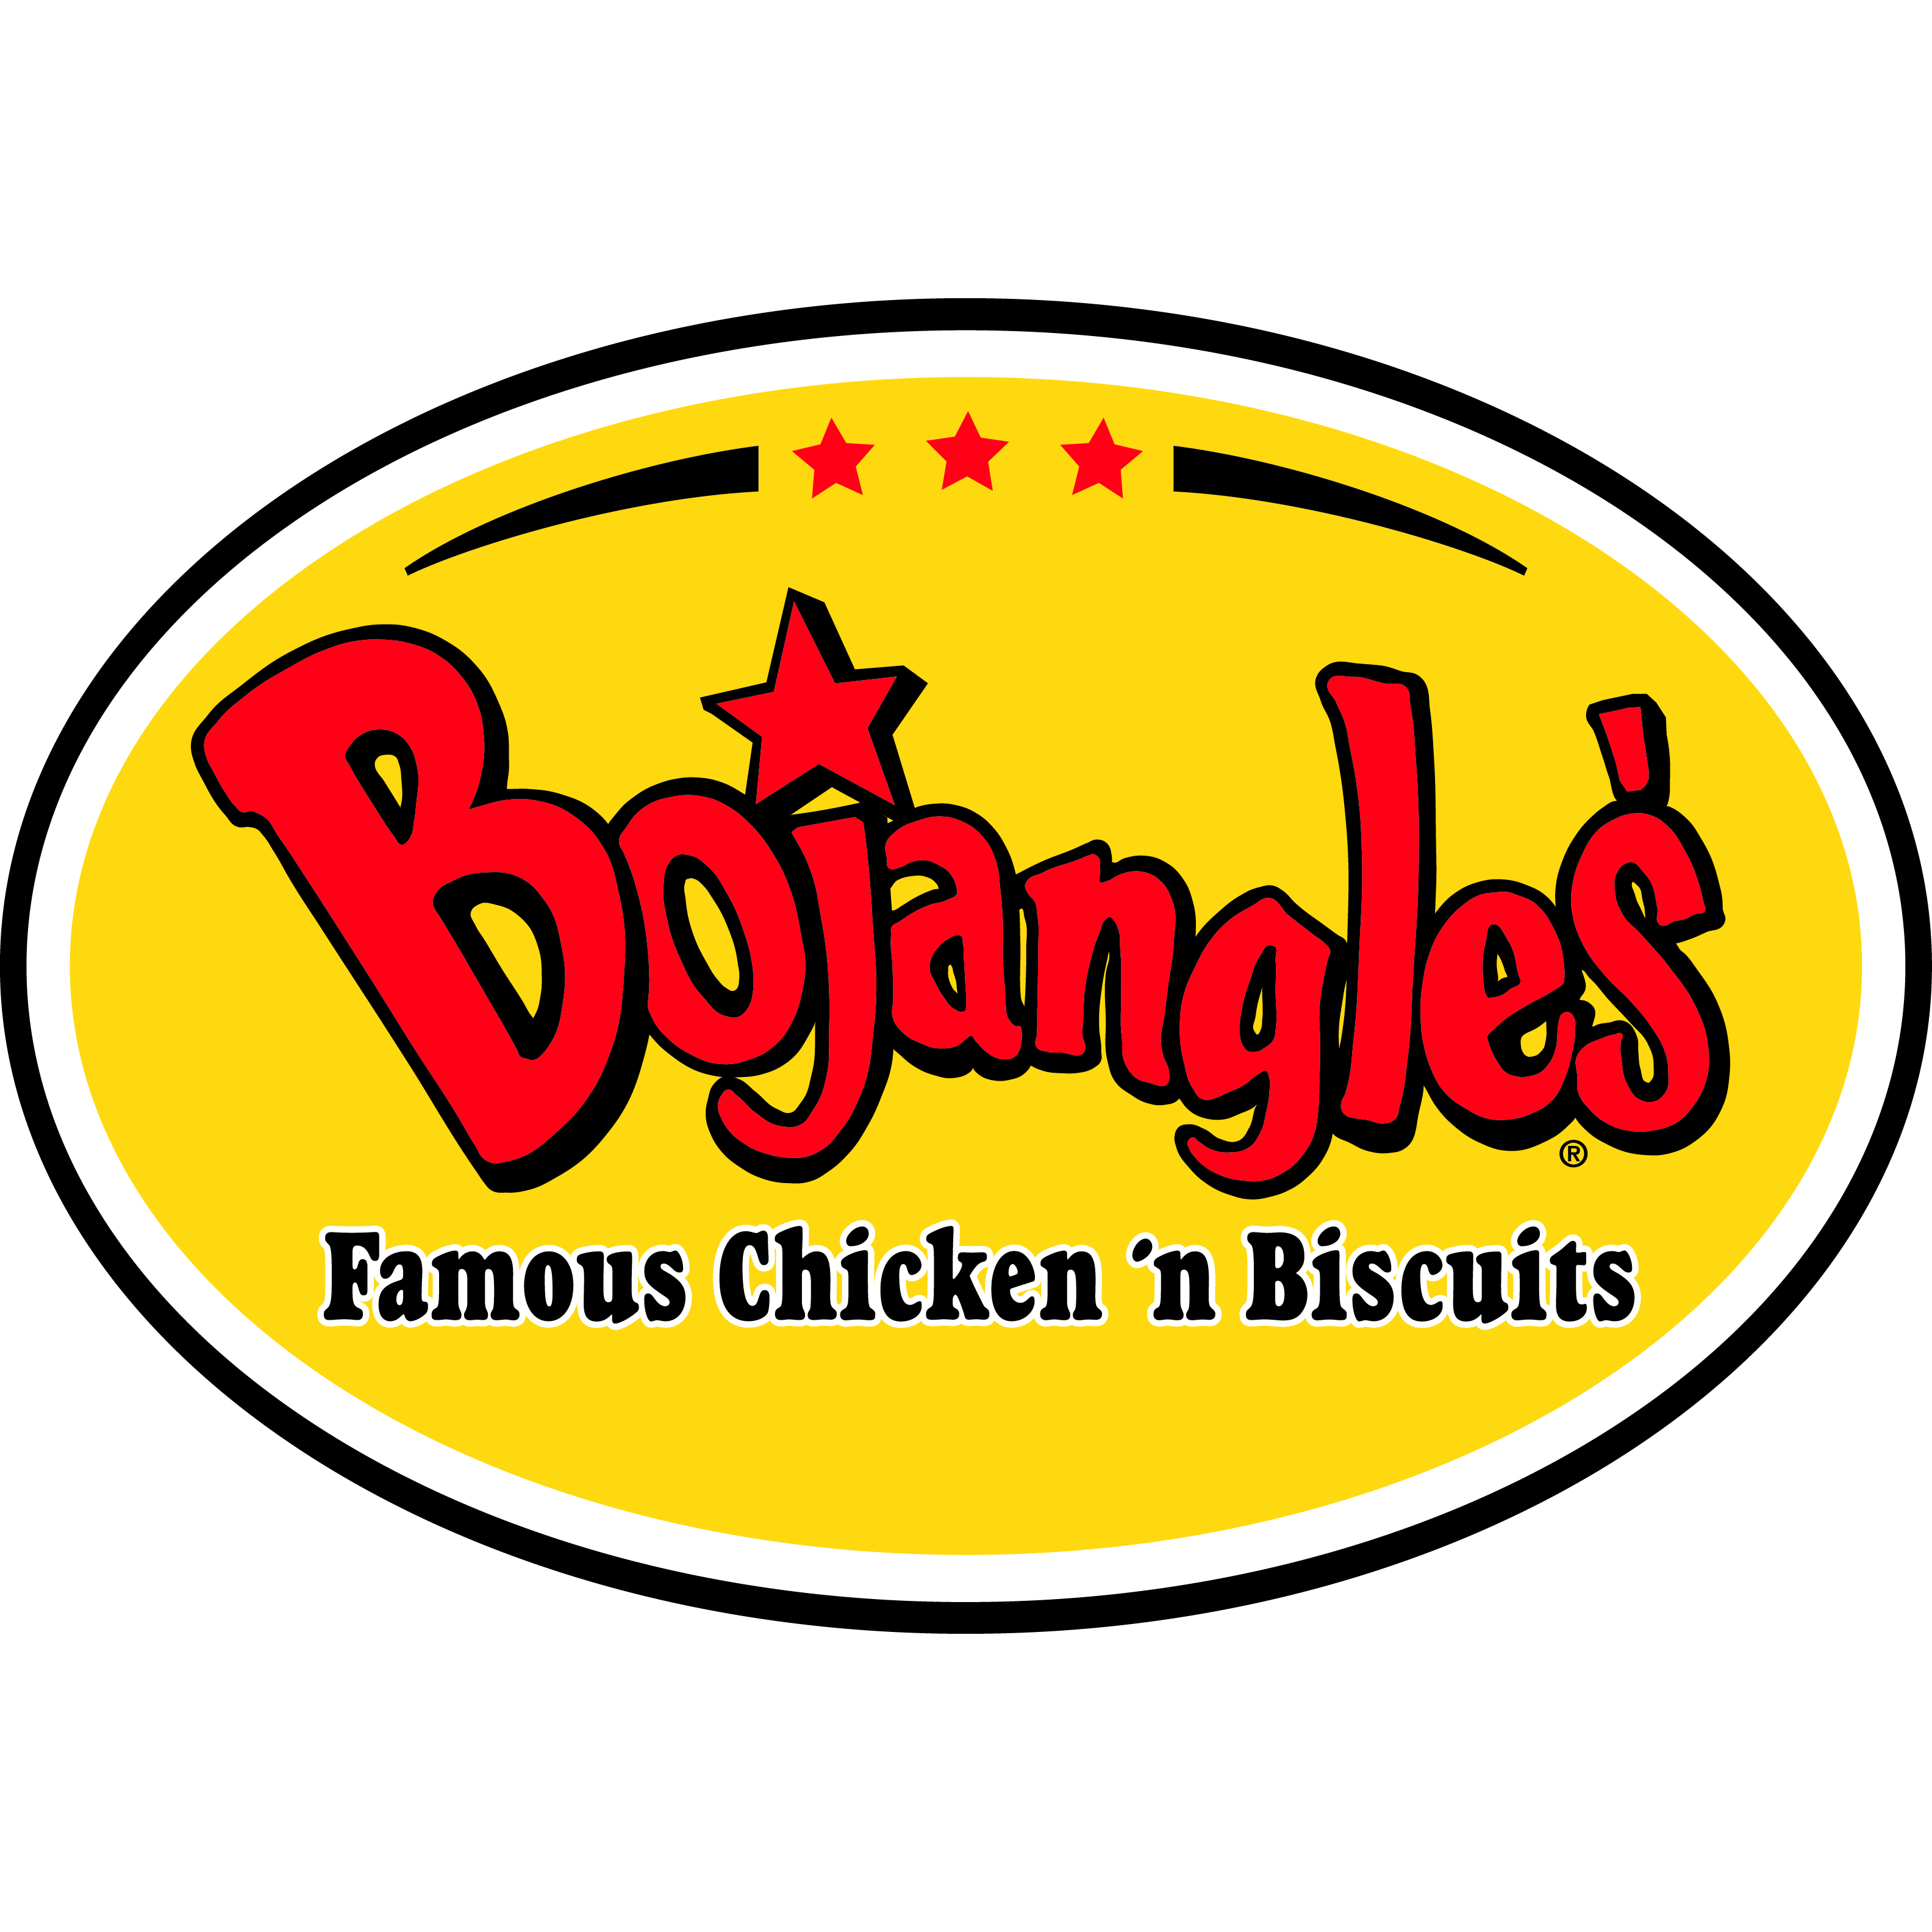 Bojangles' Famous Chicken 'n Biscuits - Chattanooga, TN - Restaurants